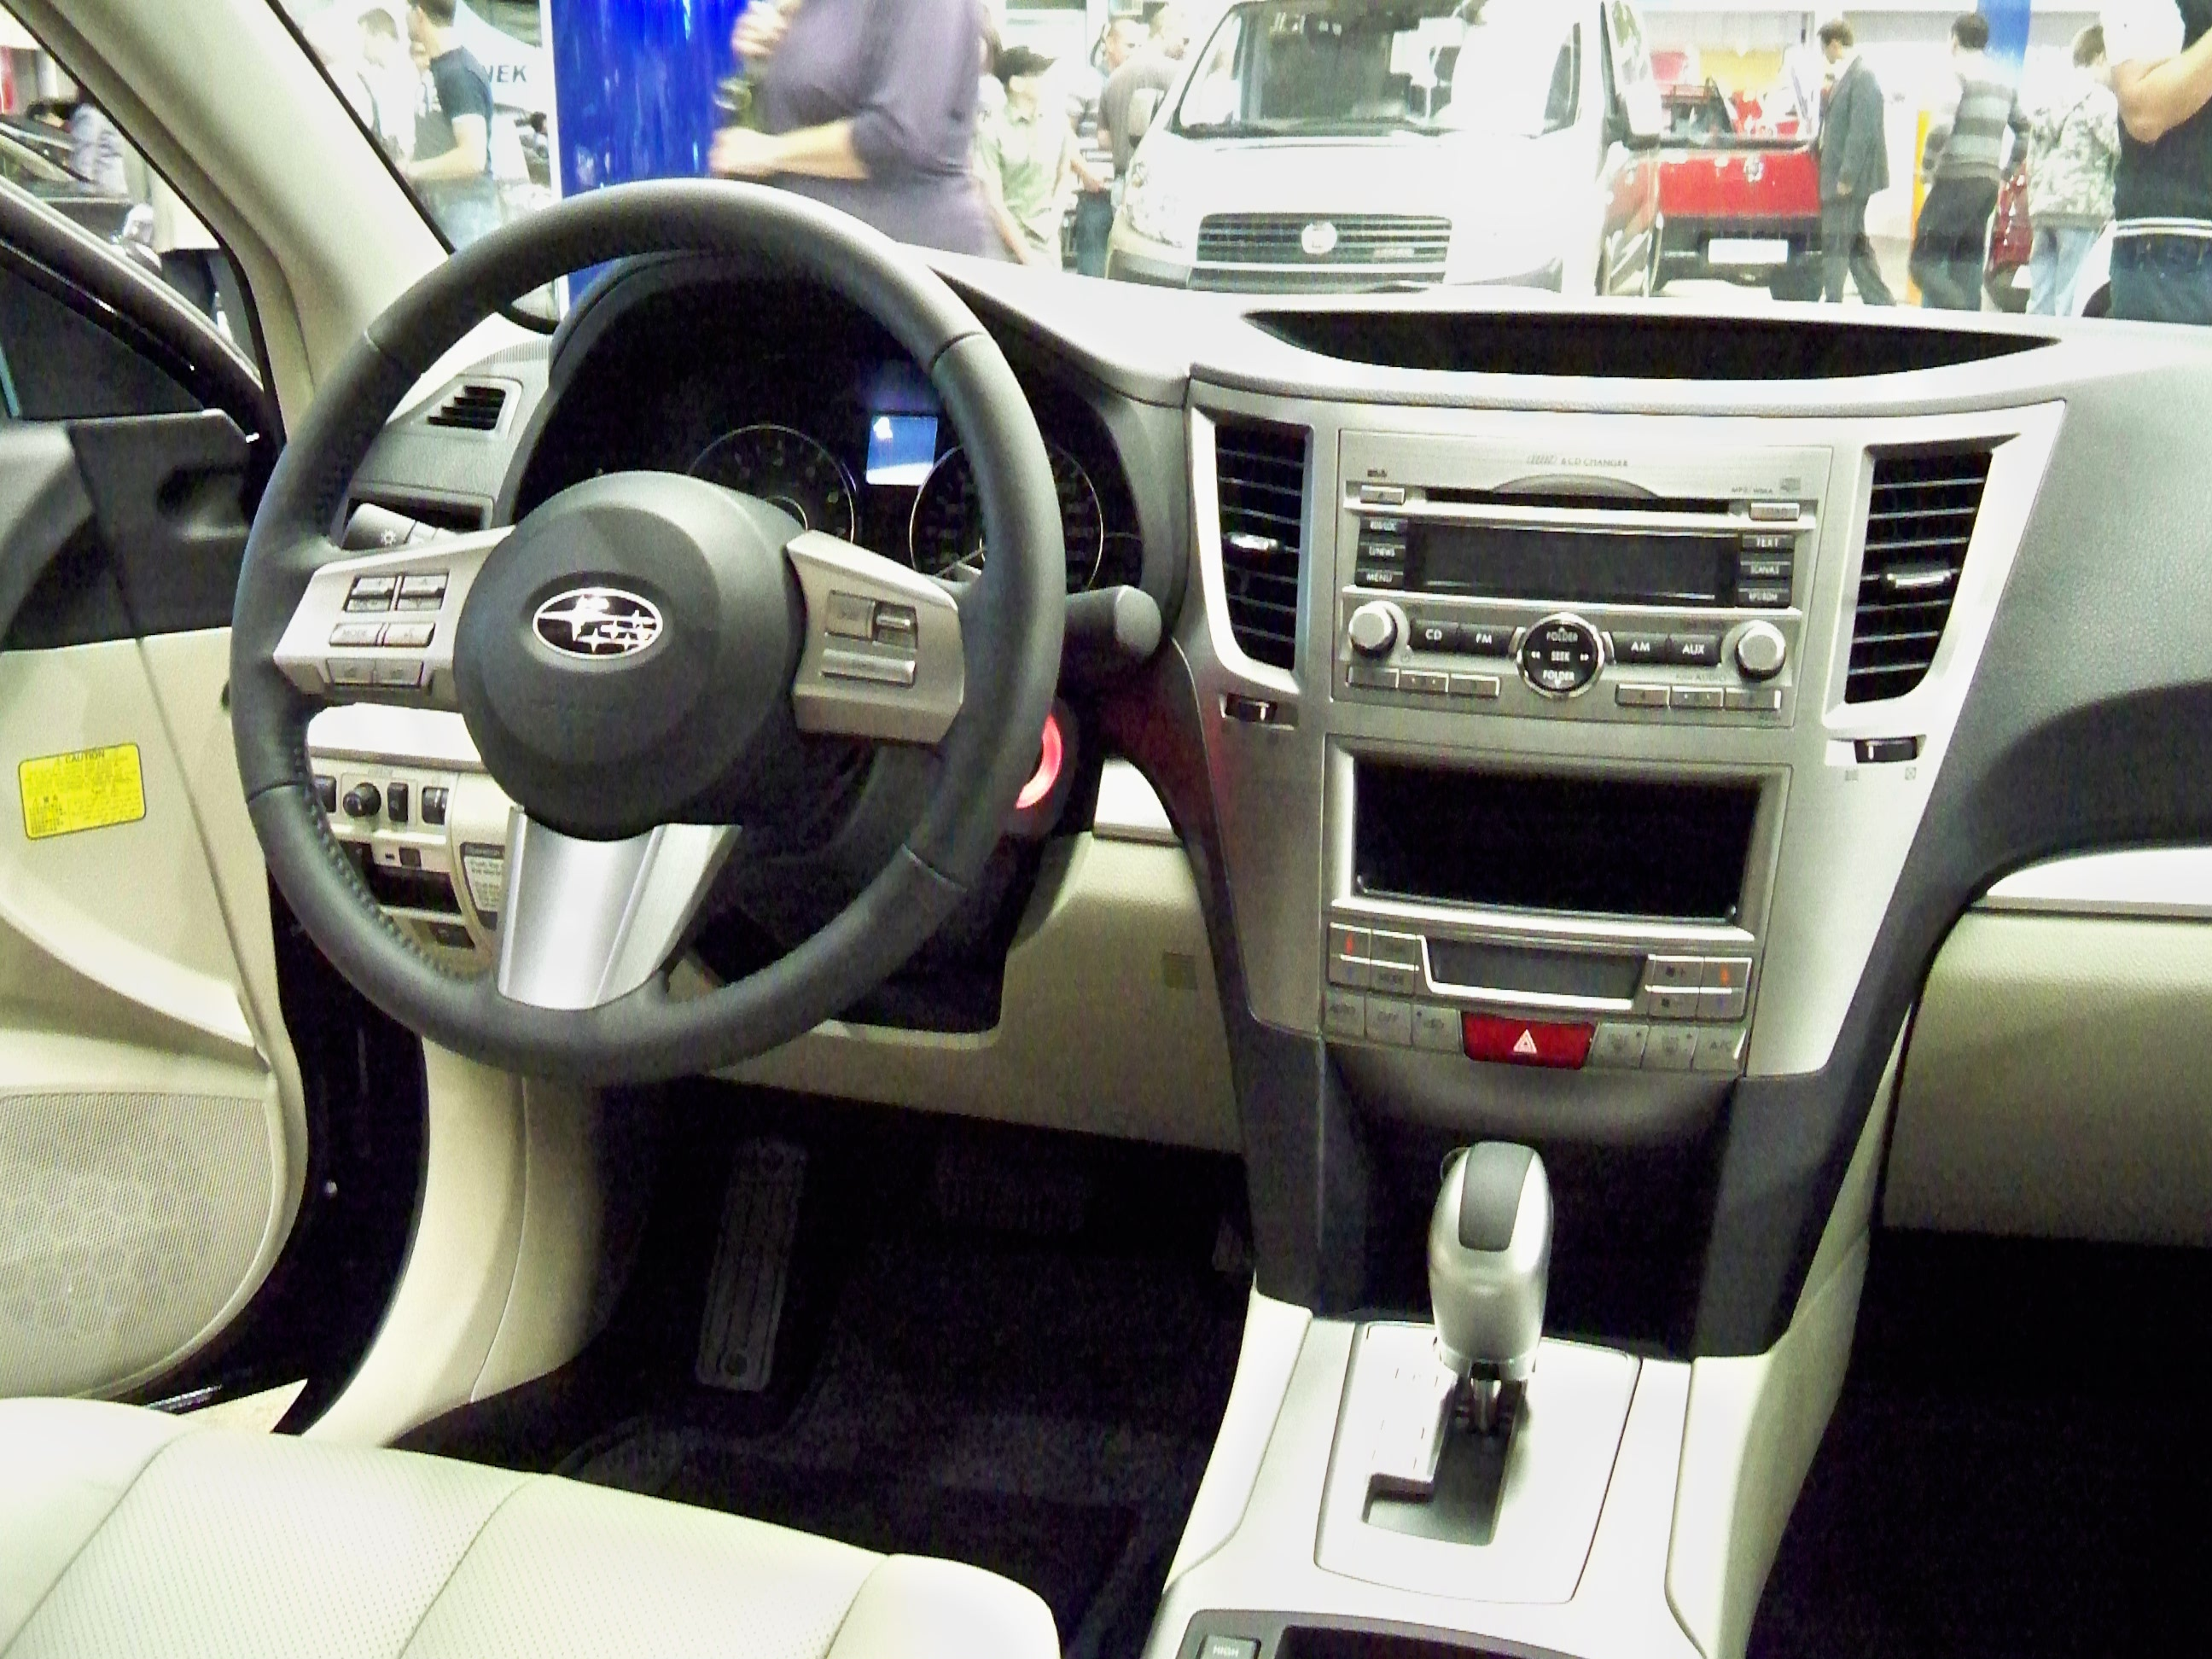 File Subaru Legacy V Sedan Interior Gms Wikimedia Commons